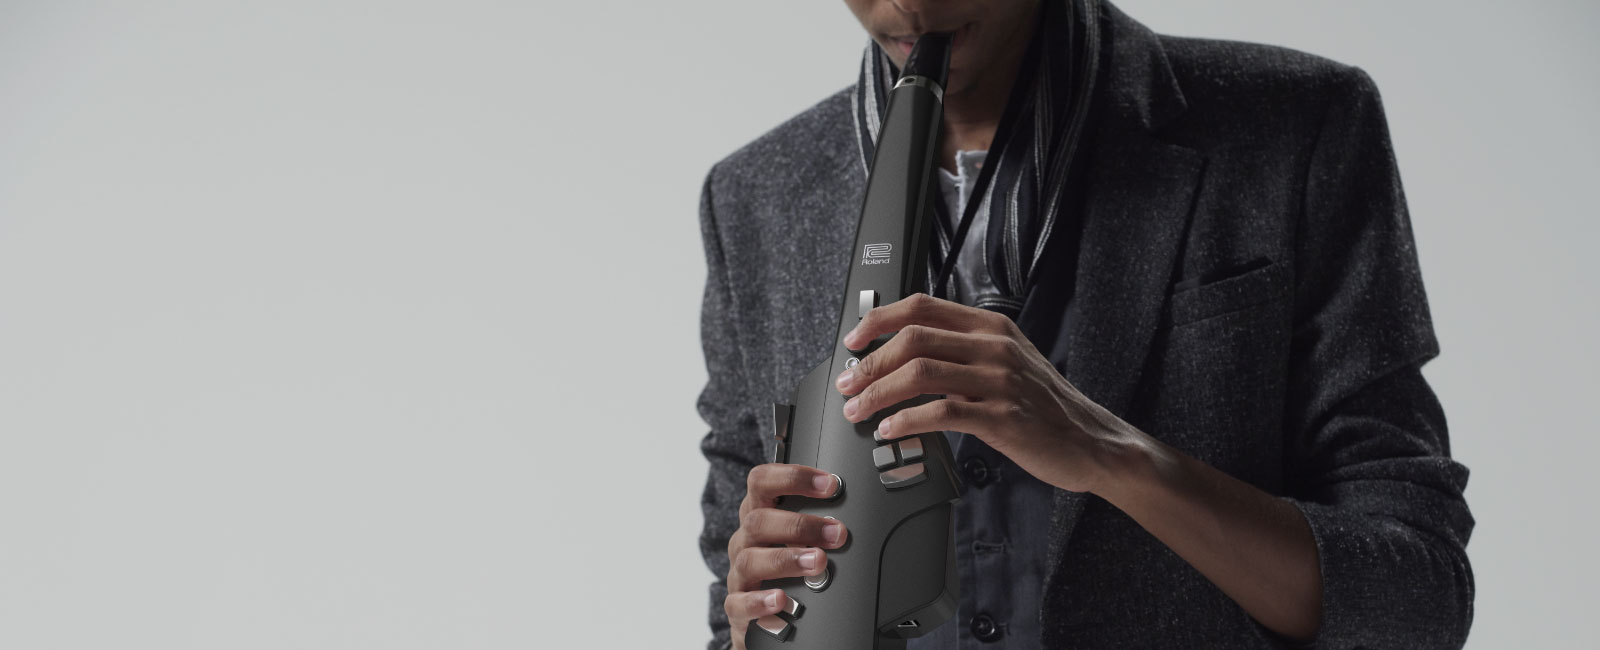 Nouvel Aerophone <br />en <strong>Version Graphite</strong><small>Digital Wind Instrument</small>